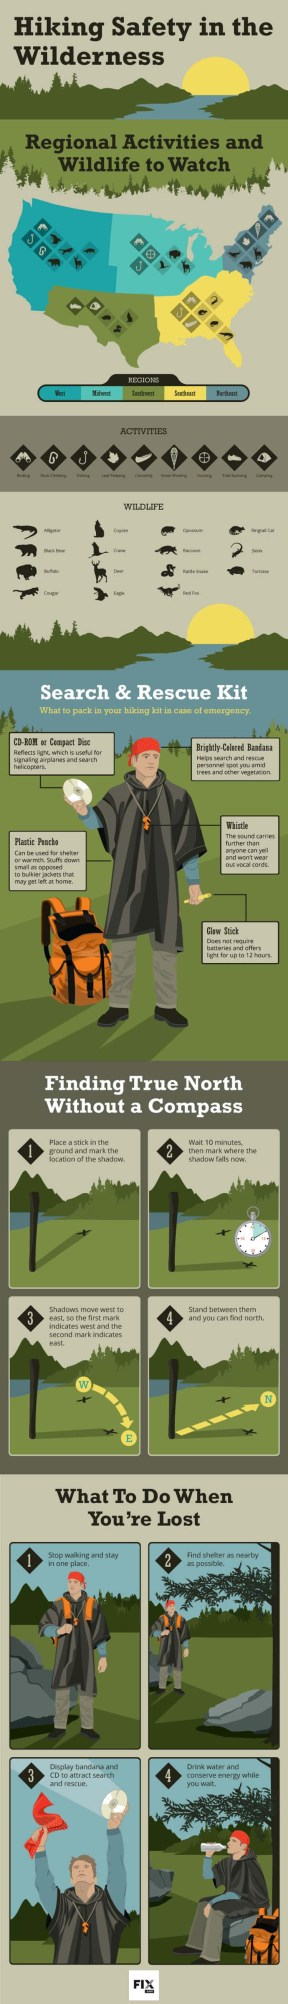 Hiking Safety Tips